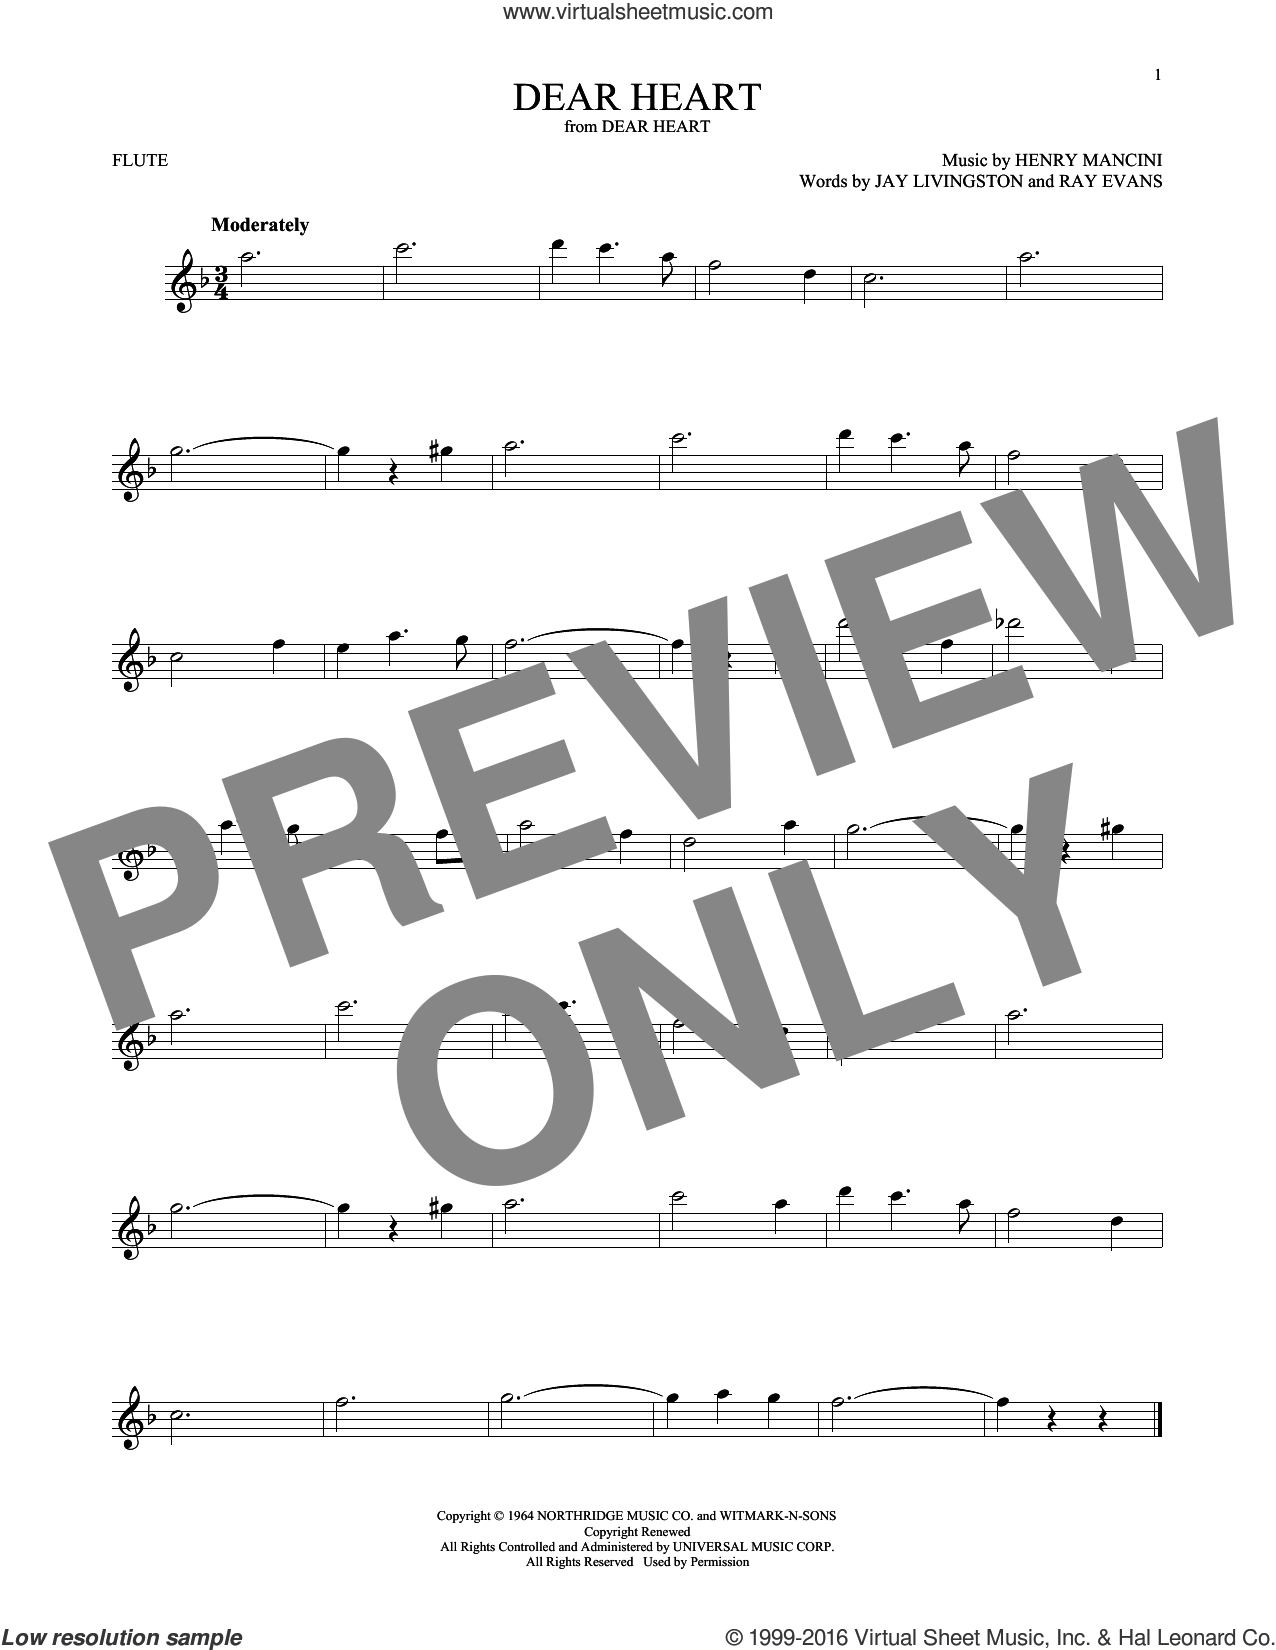 Dear Heart sheet music for flute solo by Henry Mancini, Jay Livingston and Ray Evans, intermediate skill level